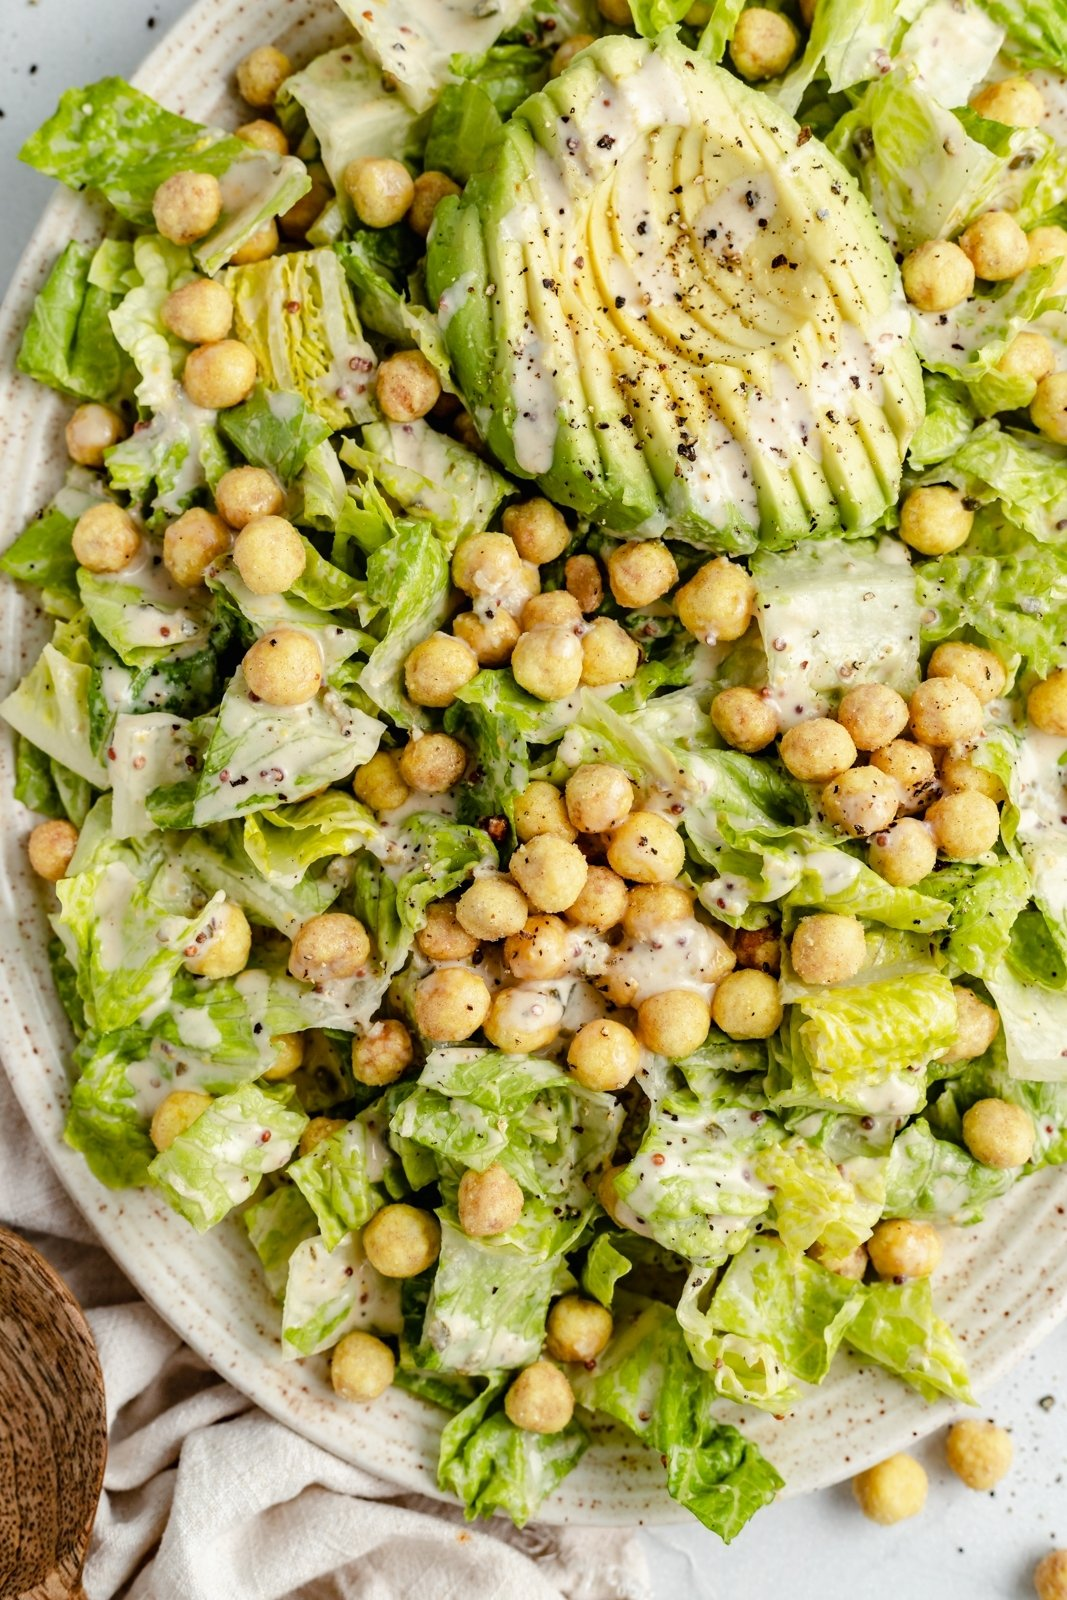 vegan caesar salad with chickpeas and avocado on a platter